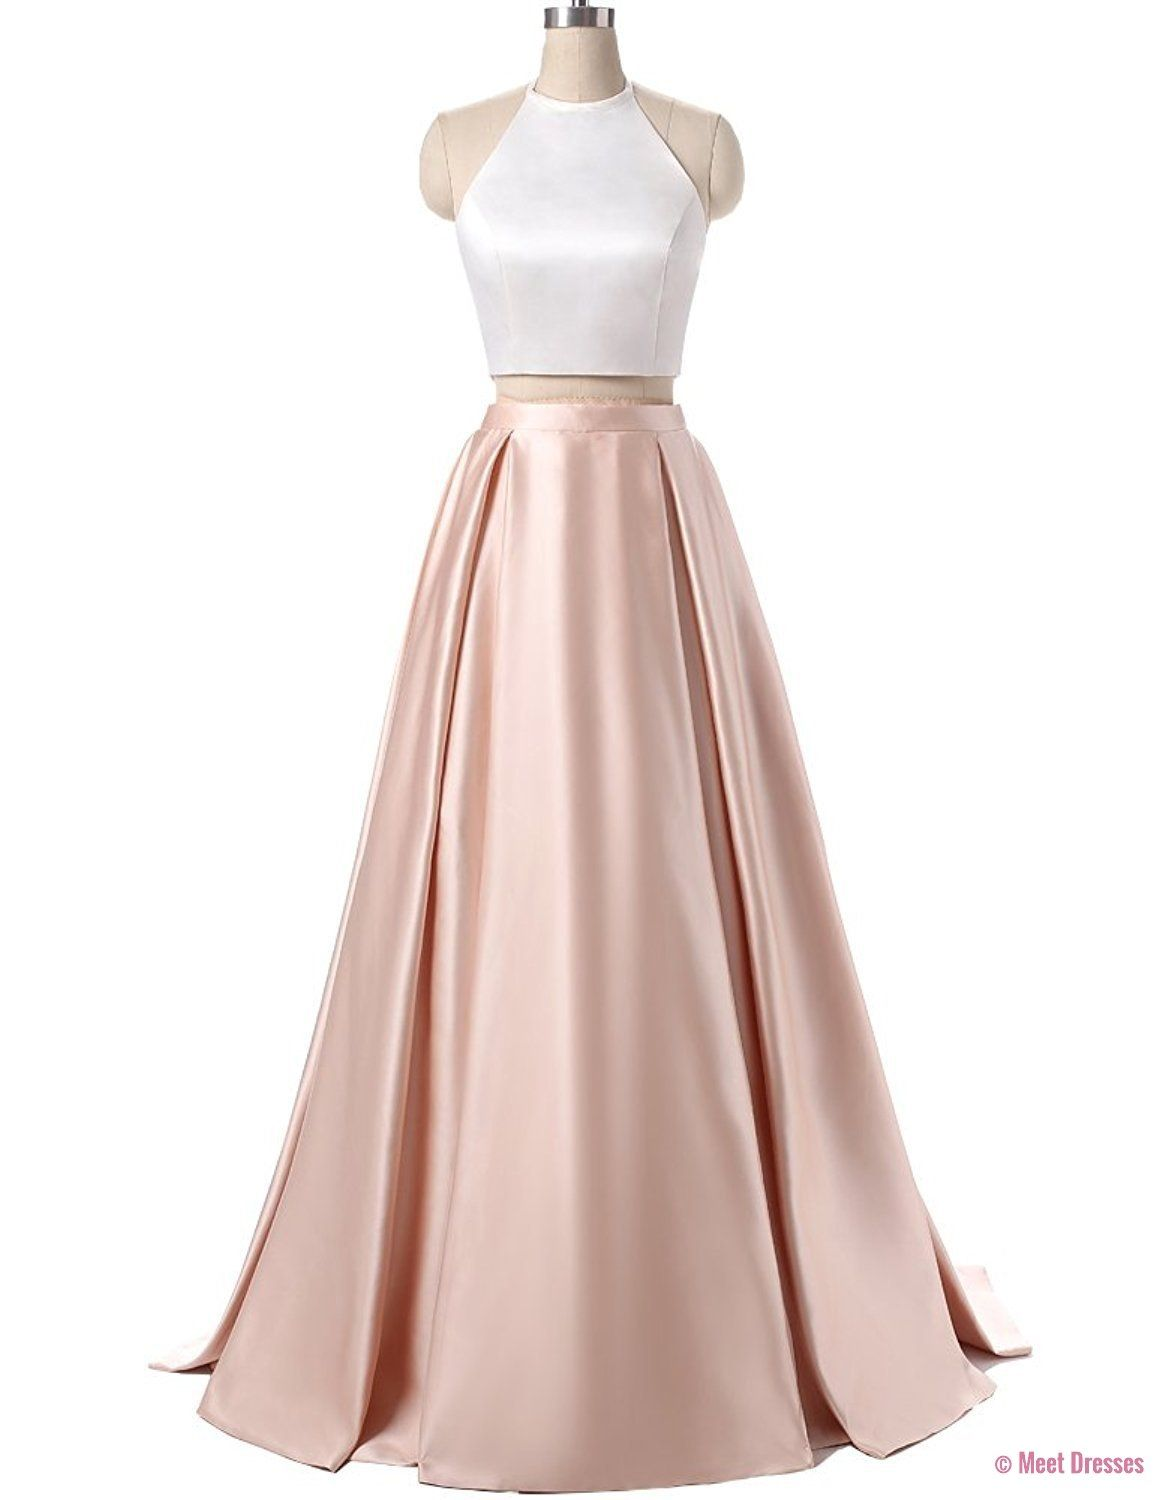 Charming Formal Halter Two Pieces Prom Dress Party Gowns With Pockets Light Pink Prom Dress Si Pink Prom Dresses Backless Prom Dresses Light Pink Prom Dress [ 1500 x 1169 Pixel ]